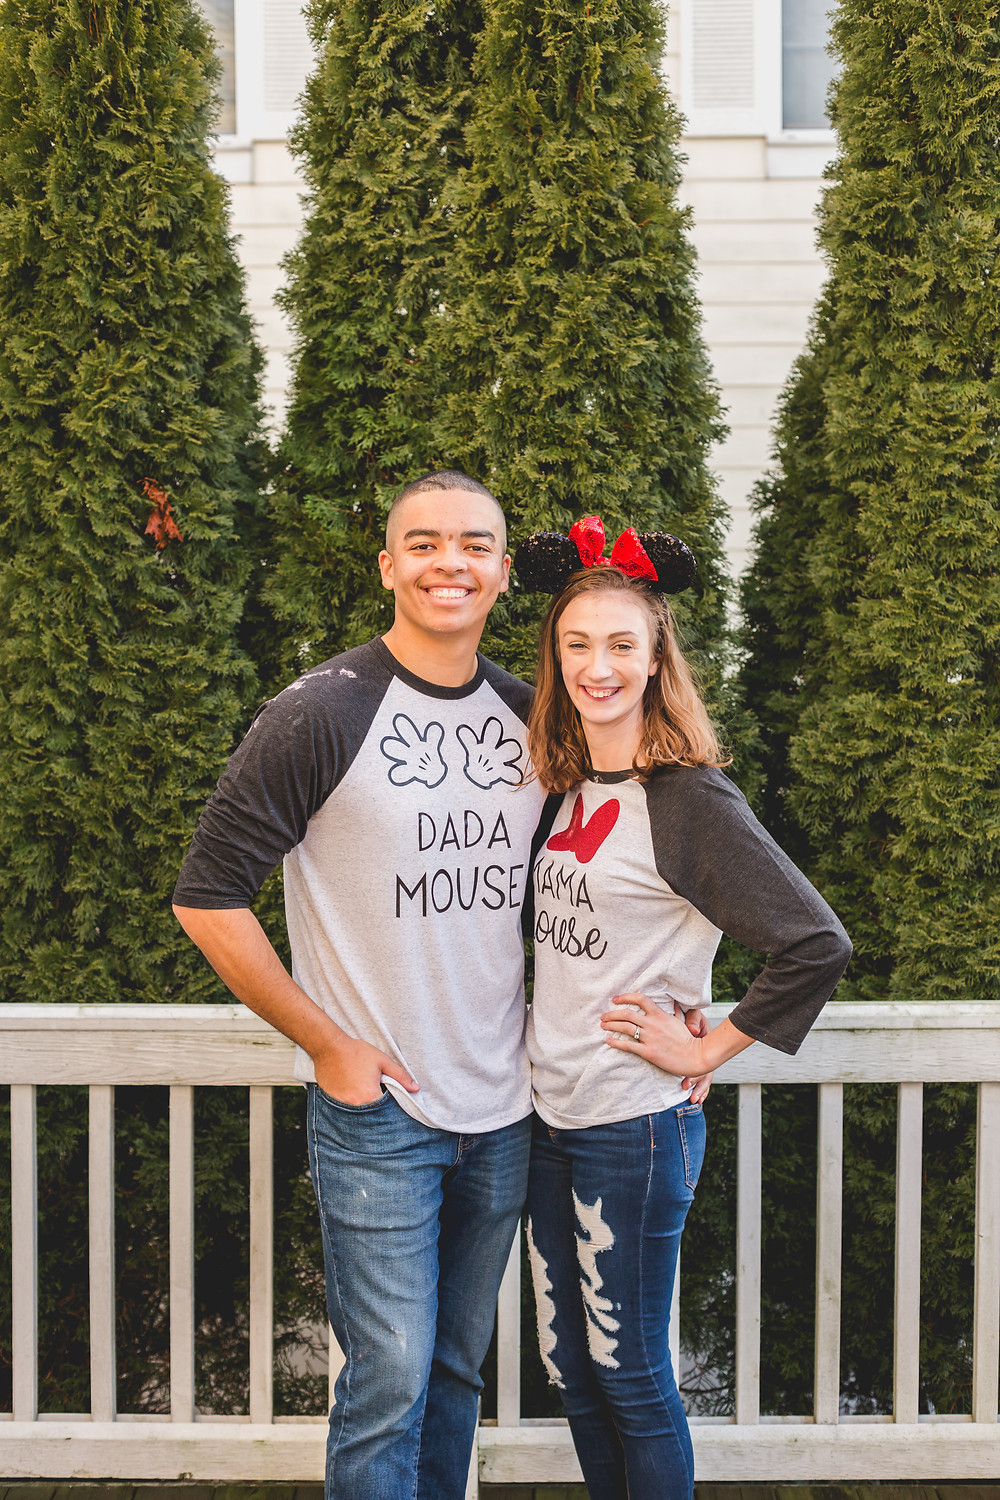 Micky Mouse mom and dad. South Elgin Photographer